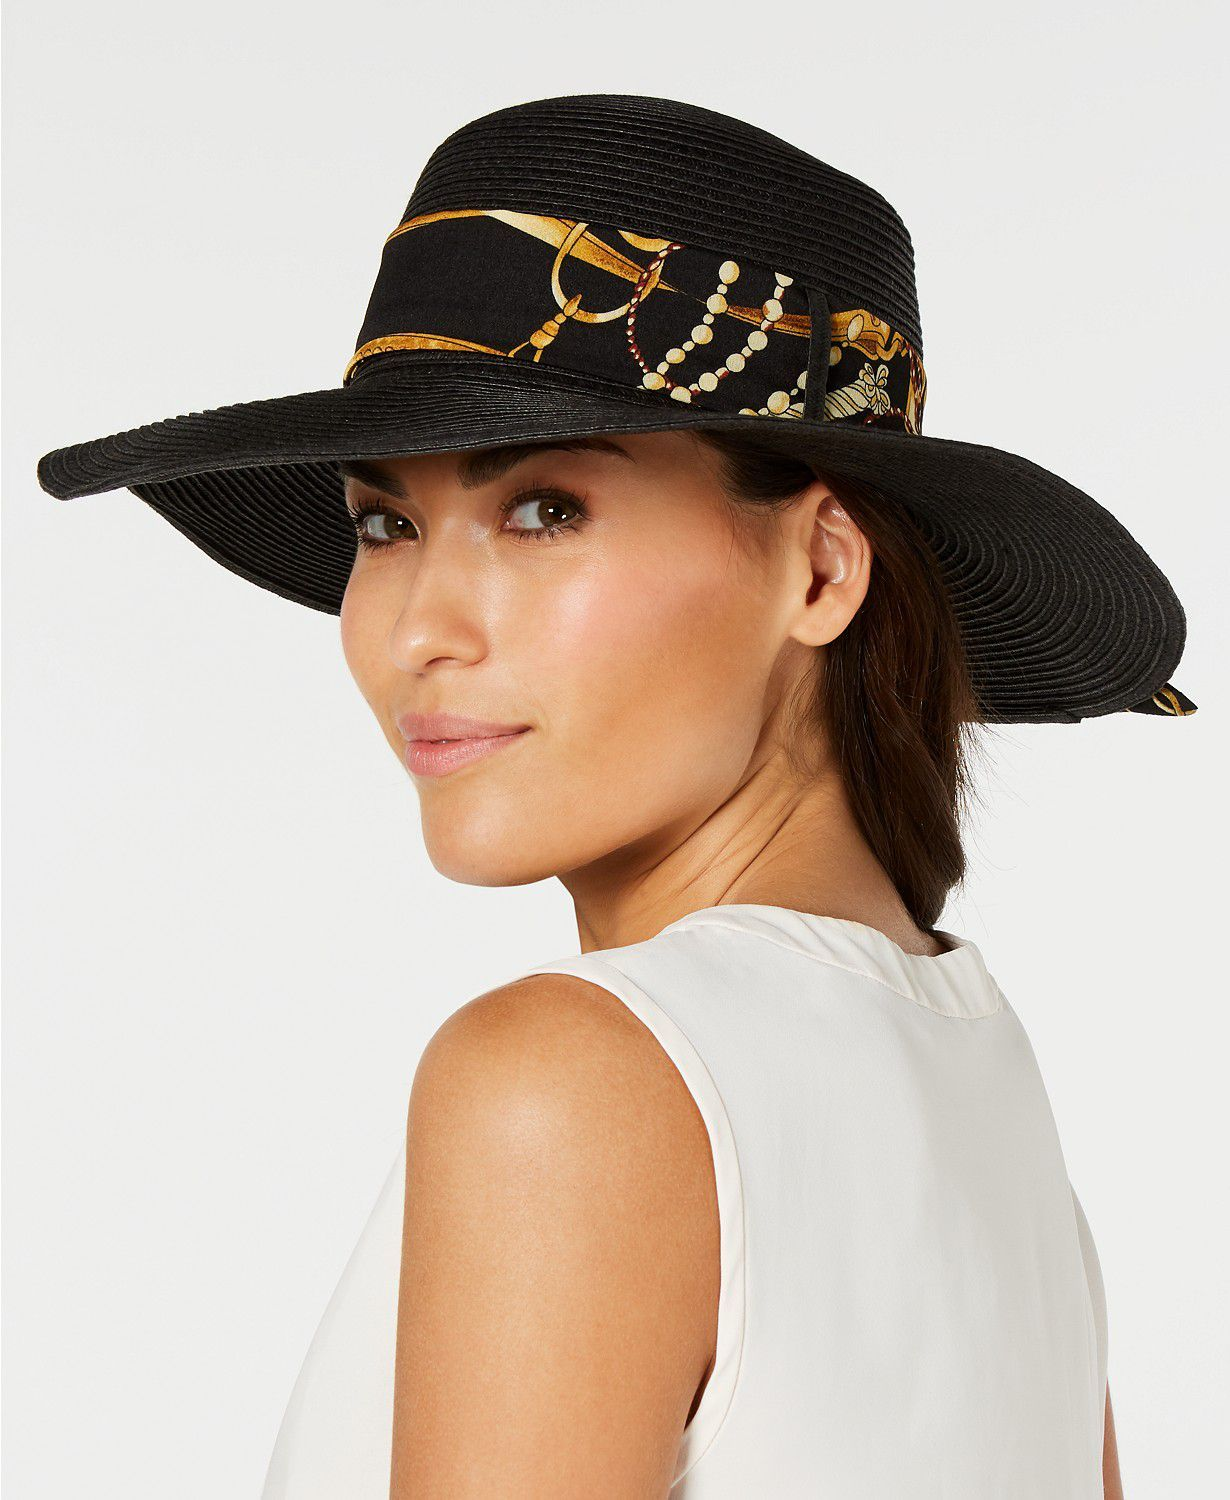 7a15c914 25 Best Sun Hats for Summer 2019 - Floppy, Woven Straw, More